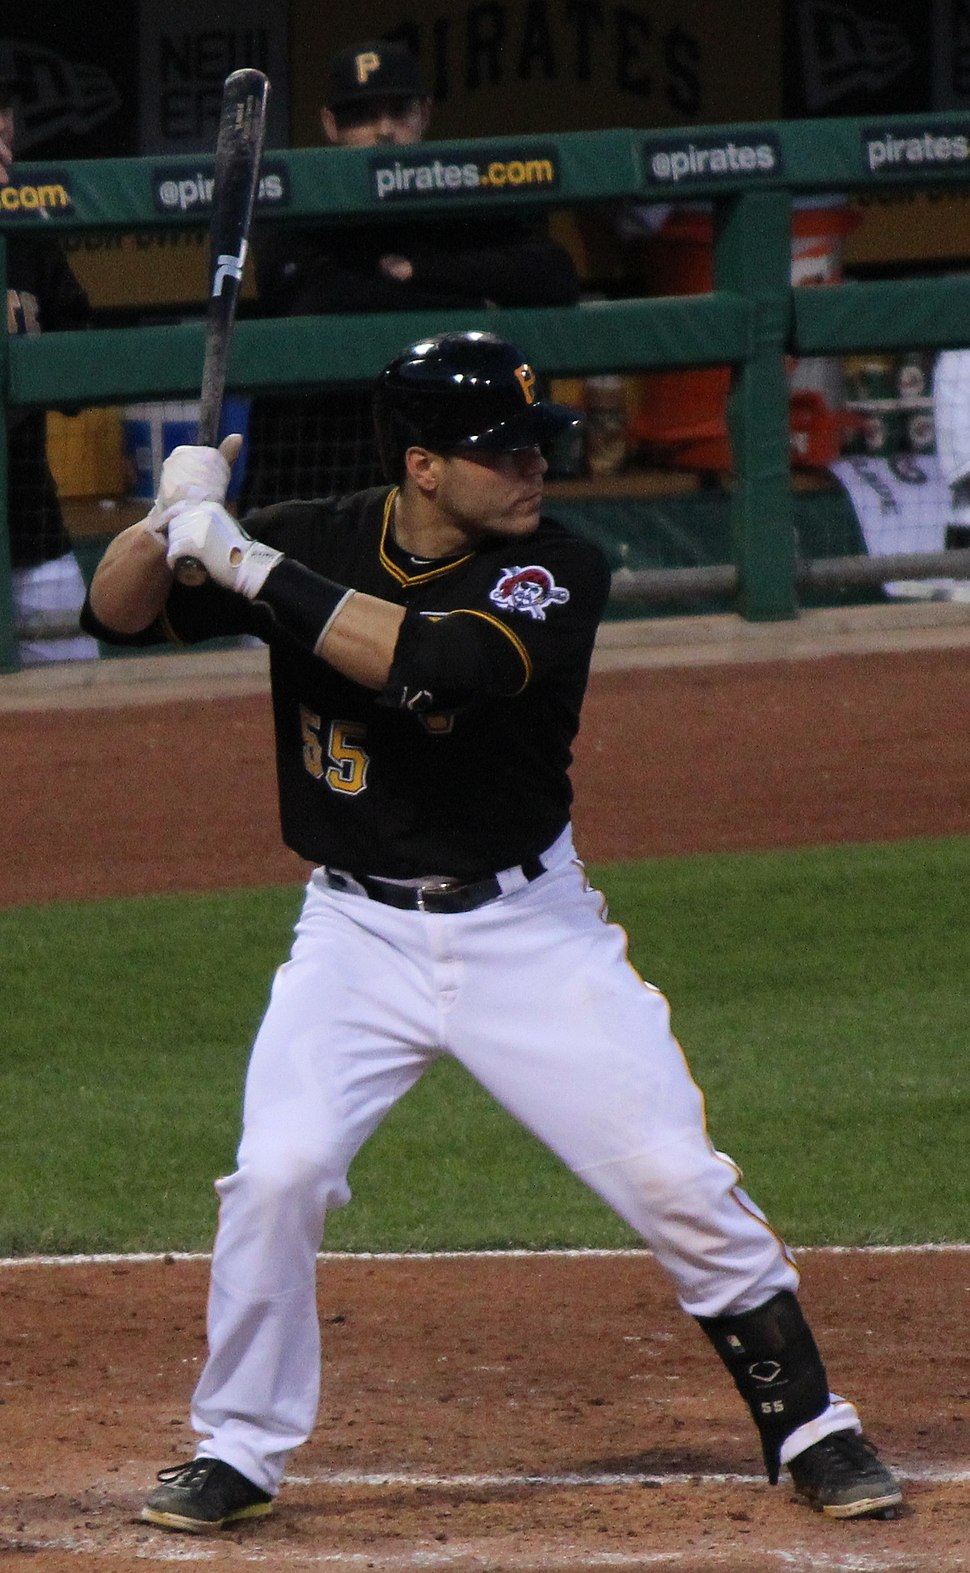 Russell Martin on May 3, 2013